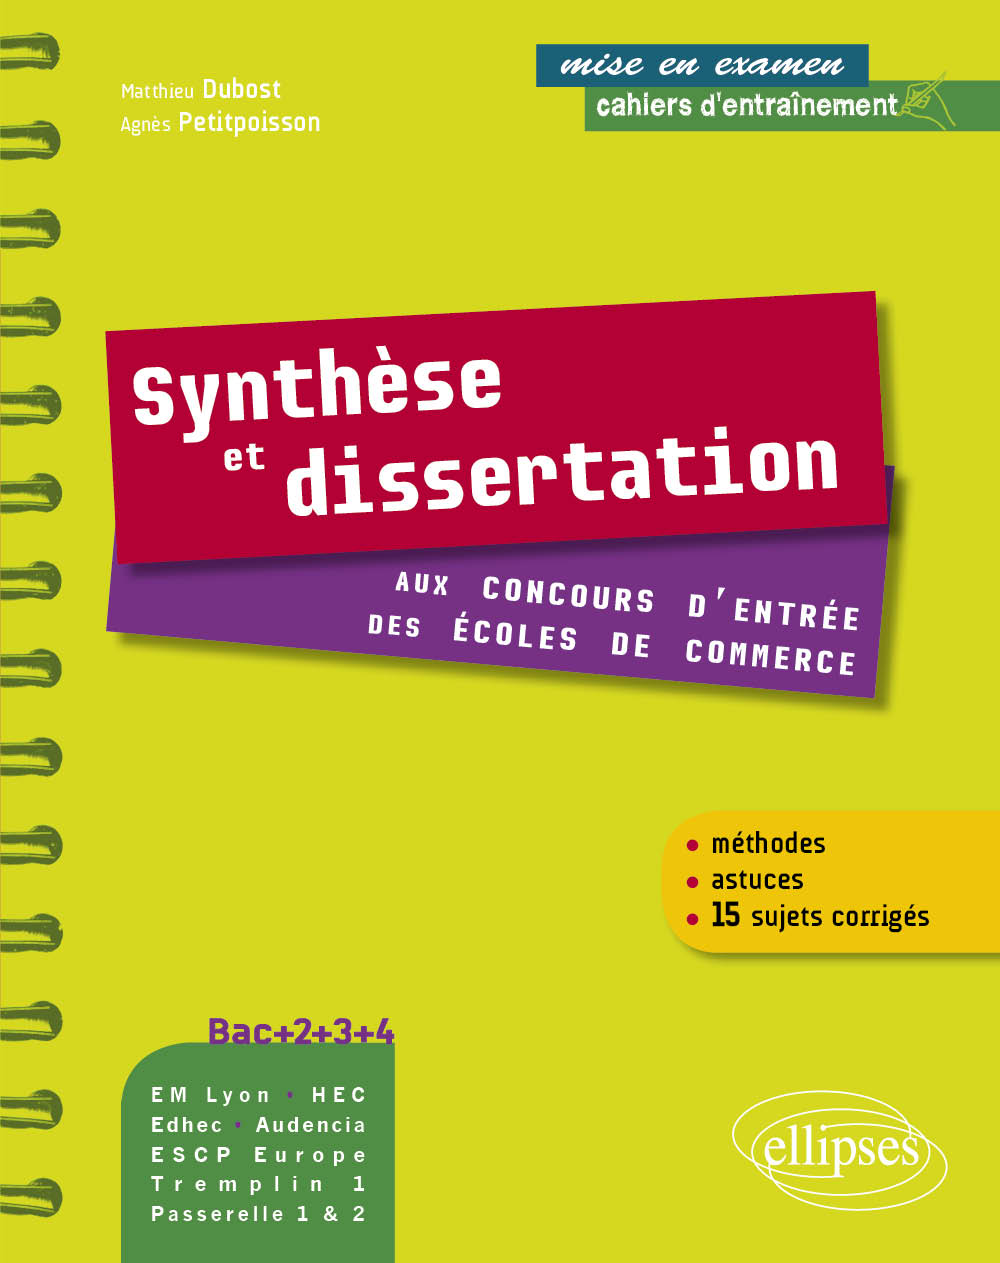 Dissertation en economie methode